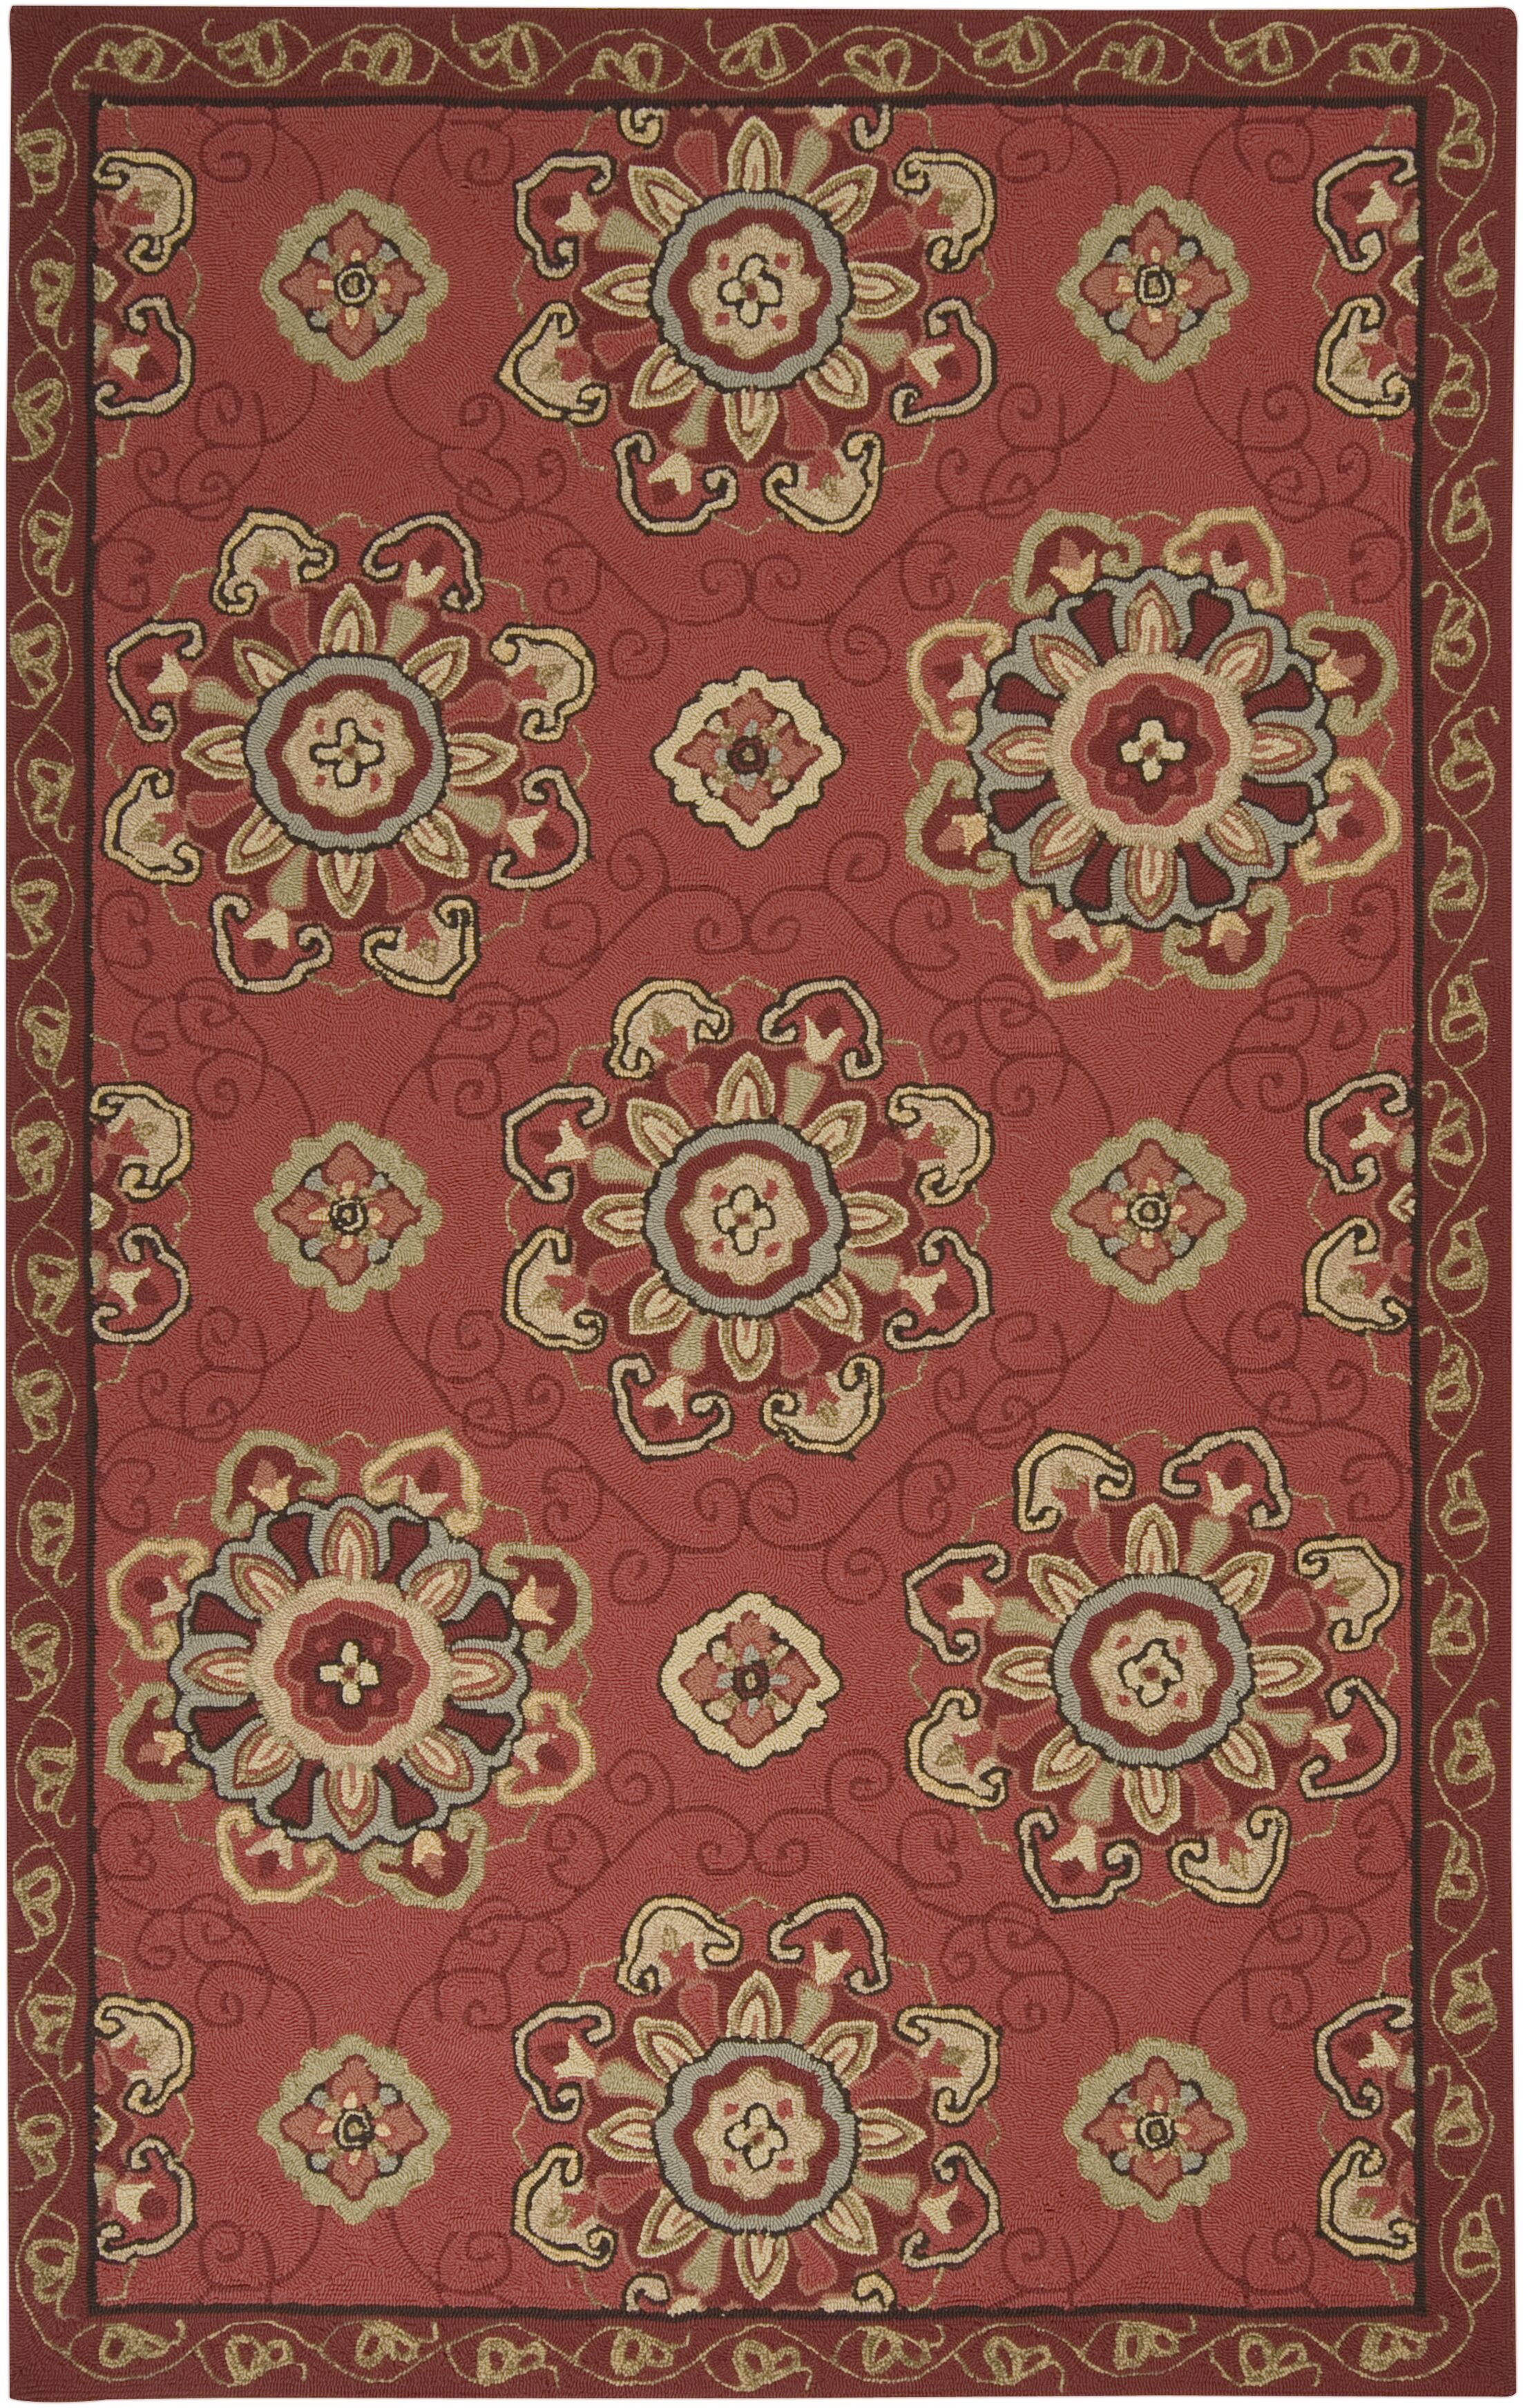 Vickery Red Clay Indoor/Outdoor Rug Rug Size: Rectangle 5' x 8'